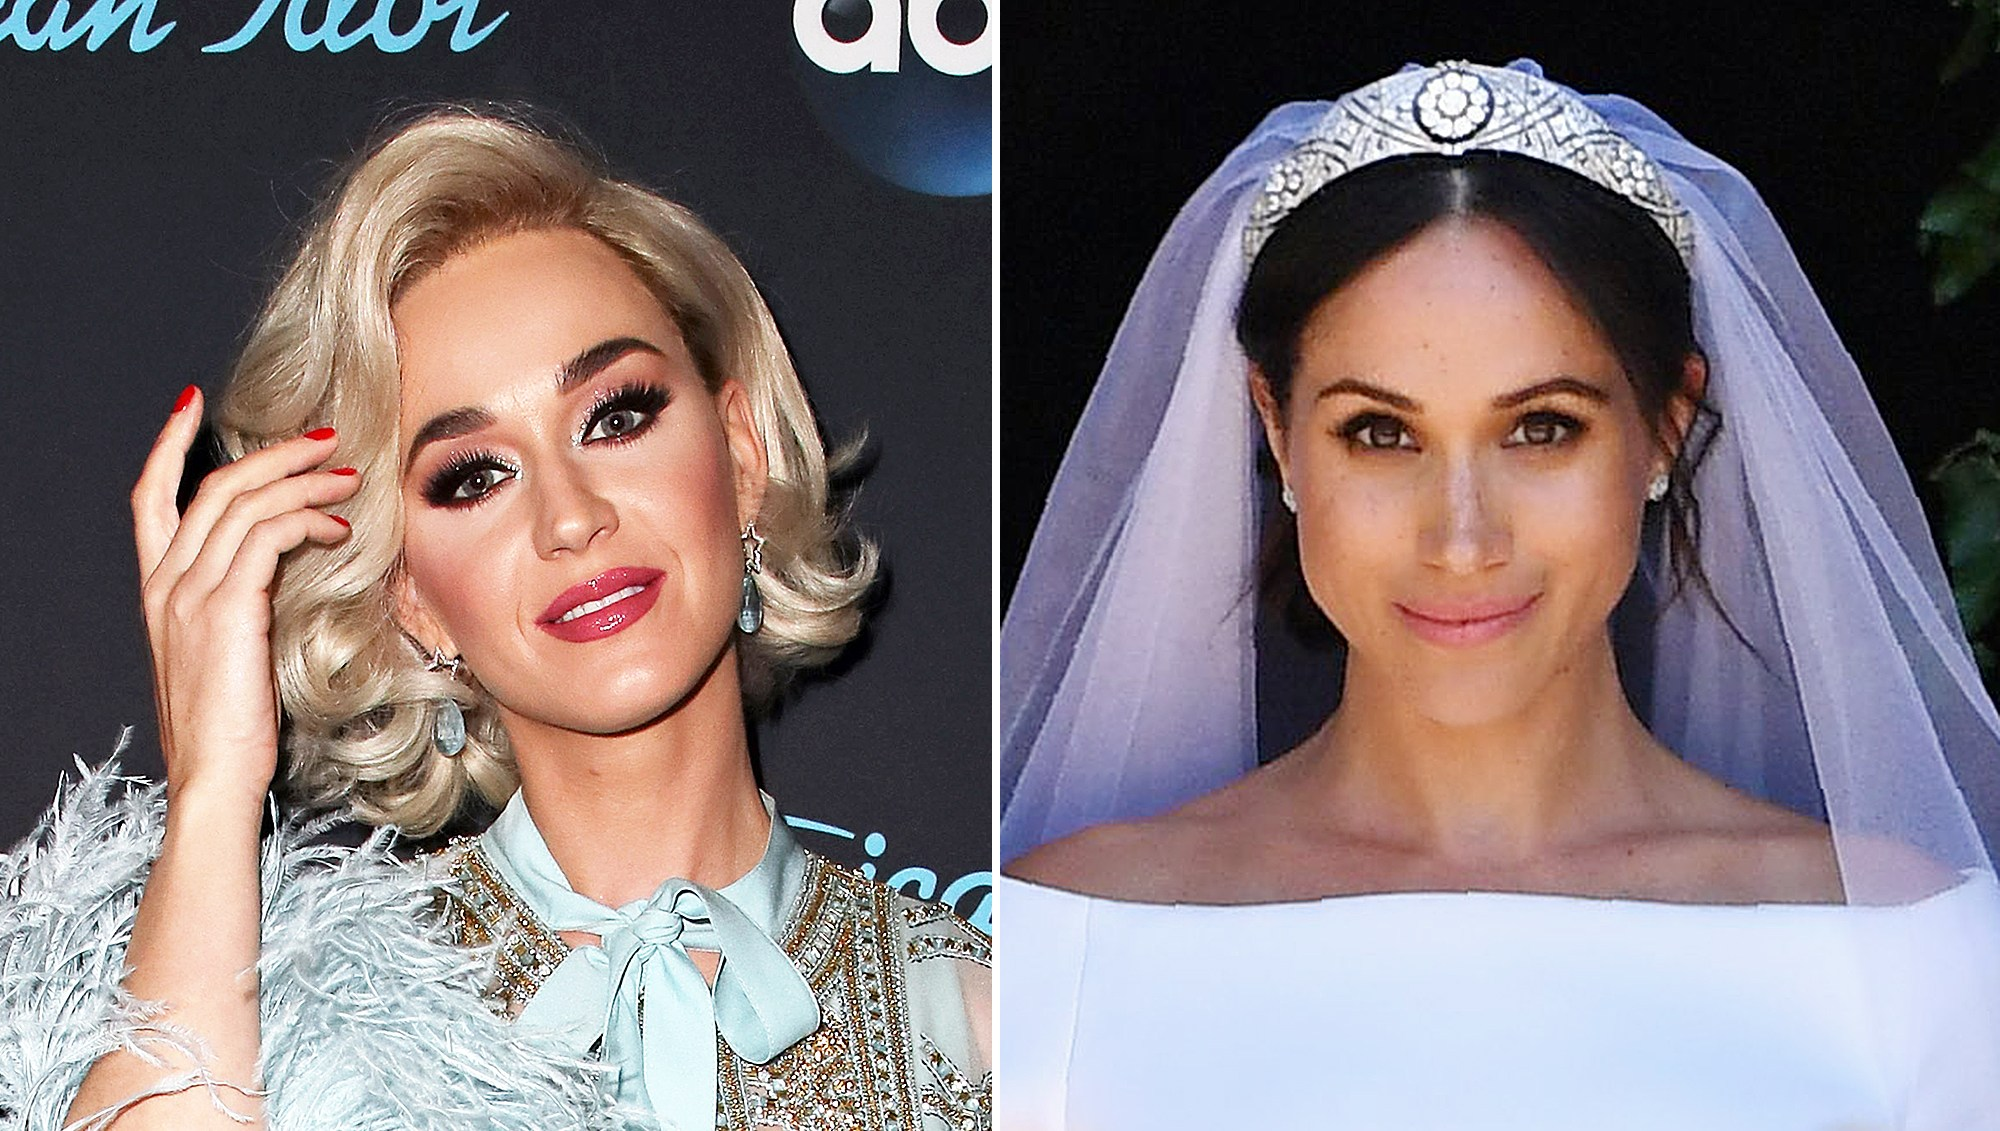 Katy Perry Meghan Markle Wedding Dress Fitting